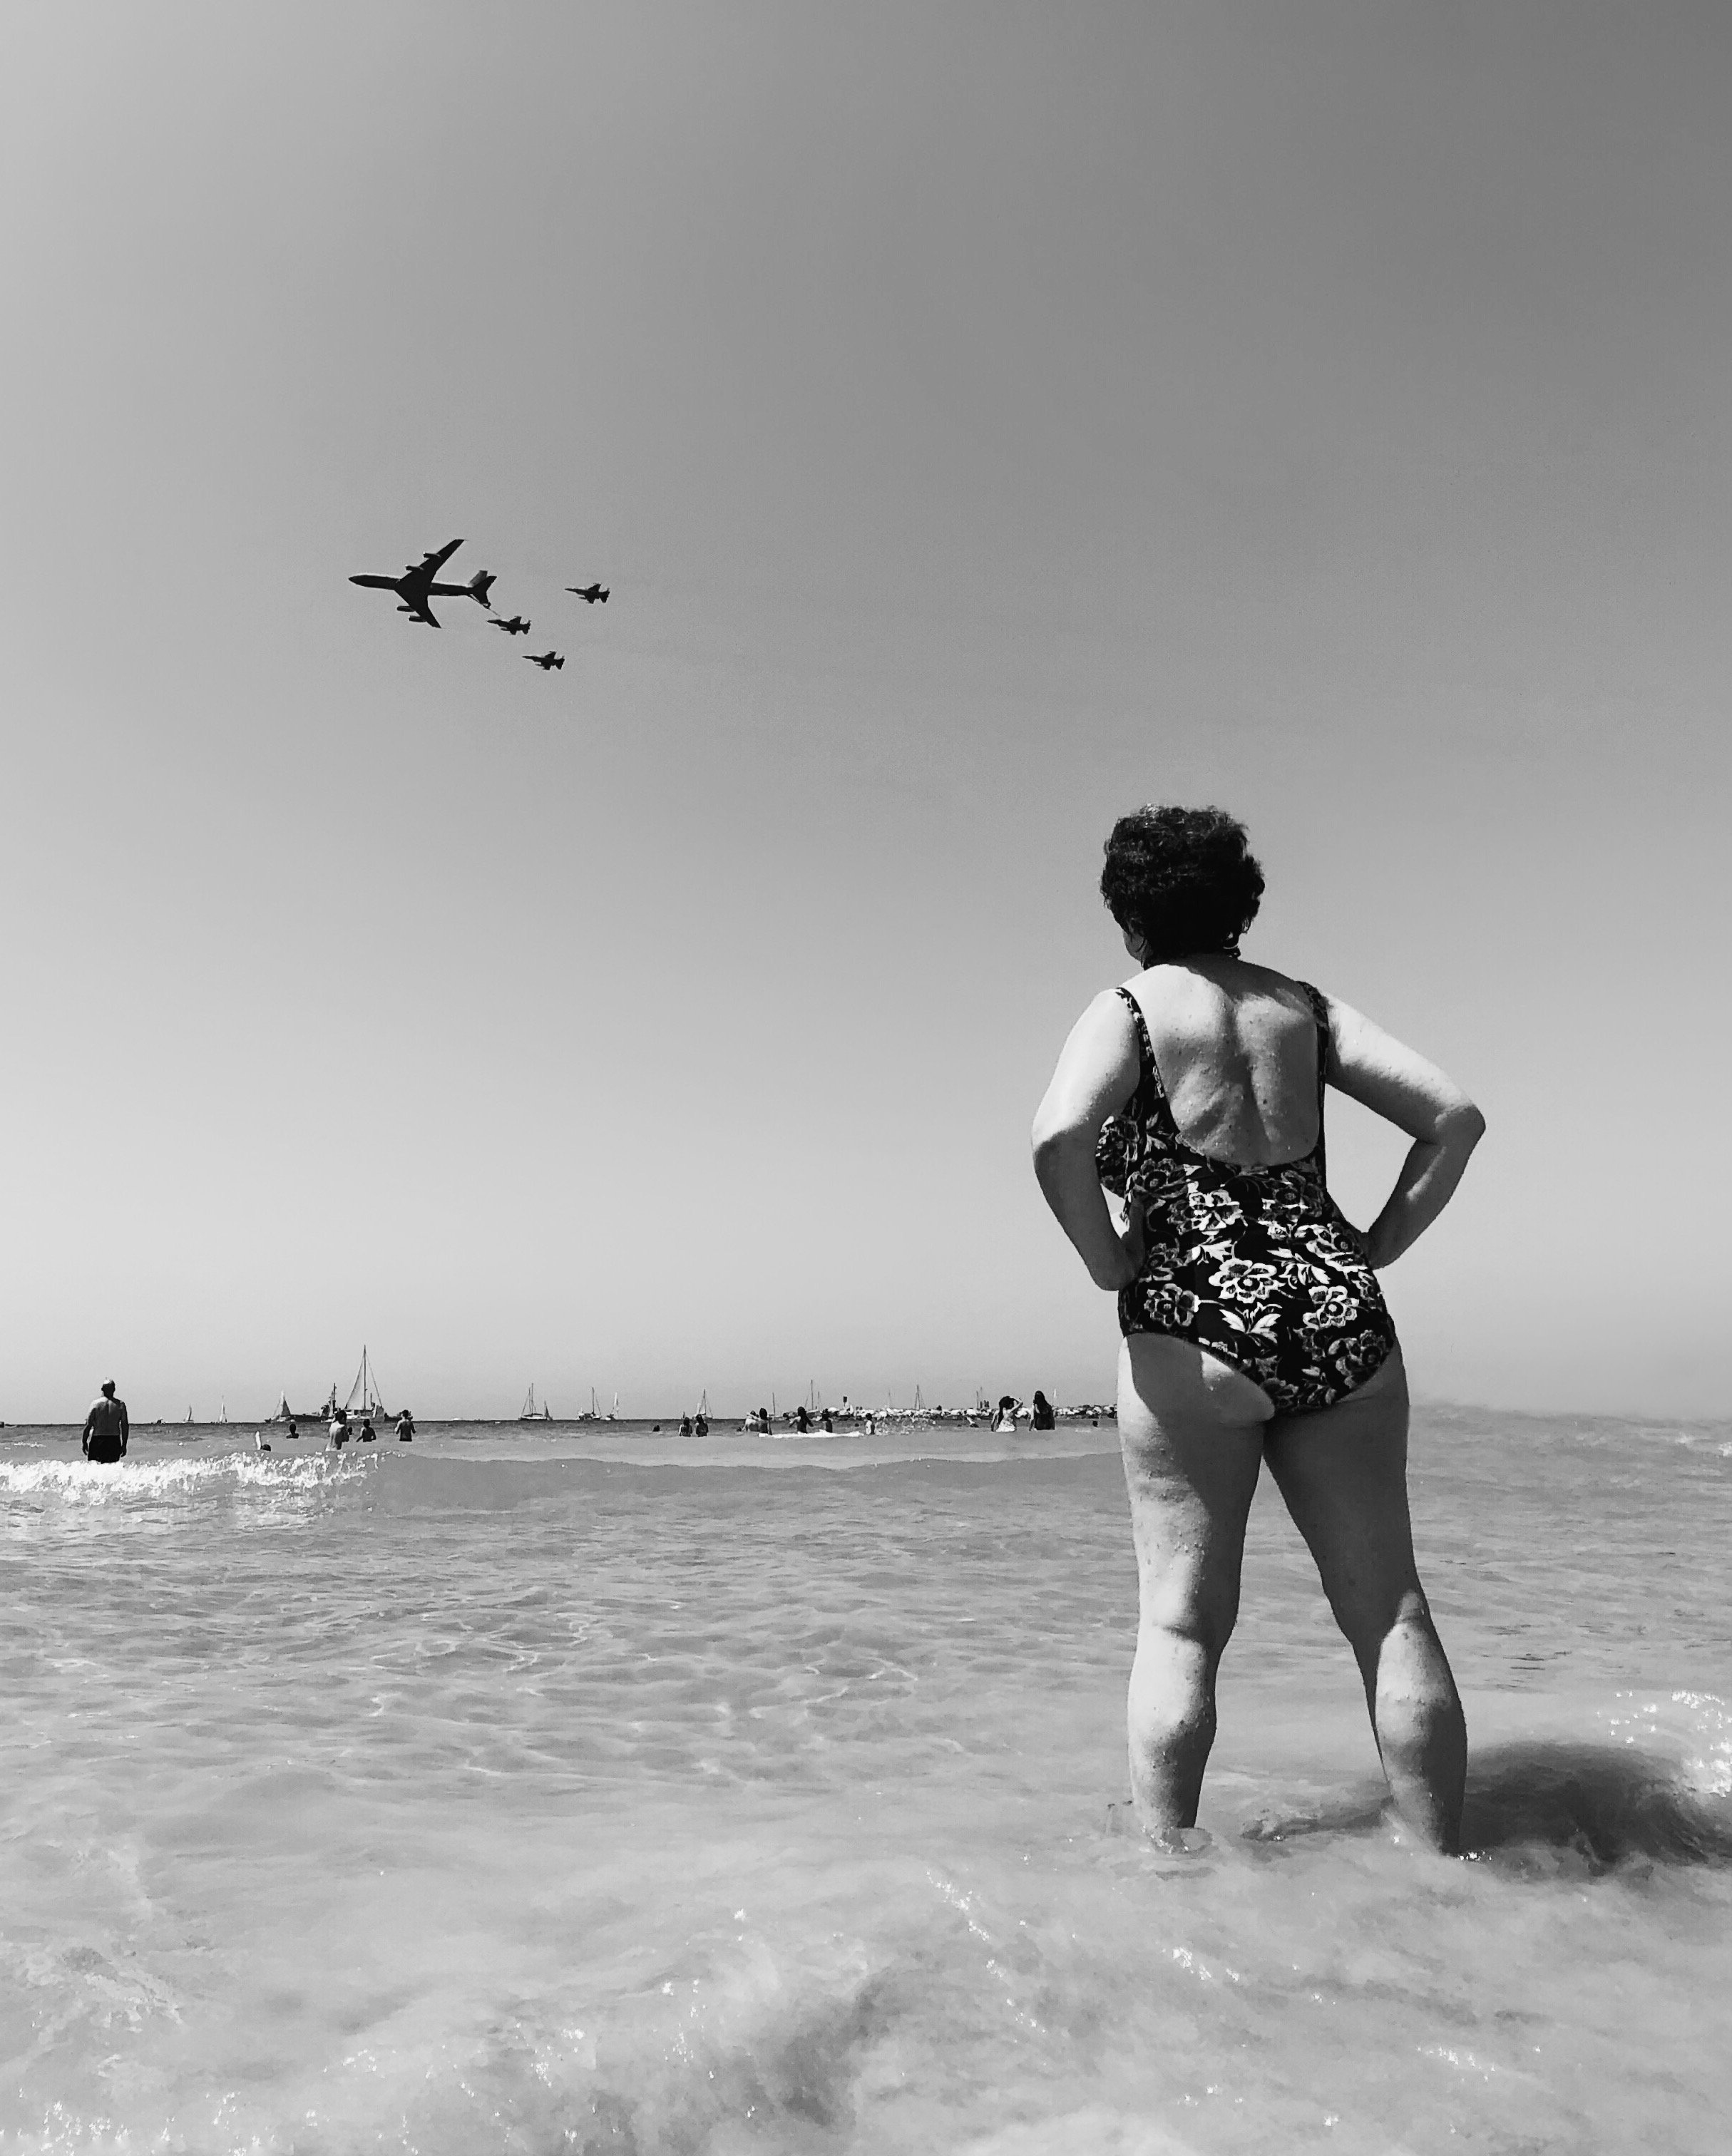 Airplanes and Flowers by Dina Alfasi